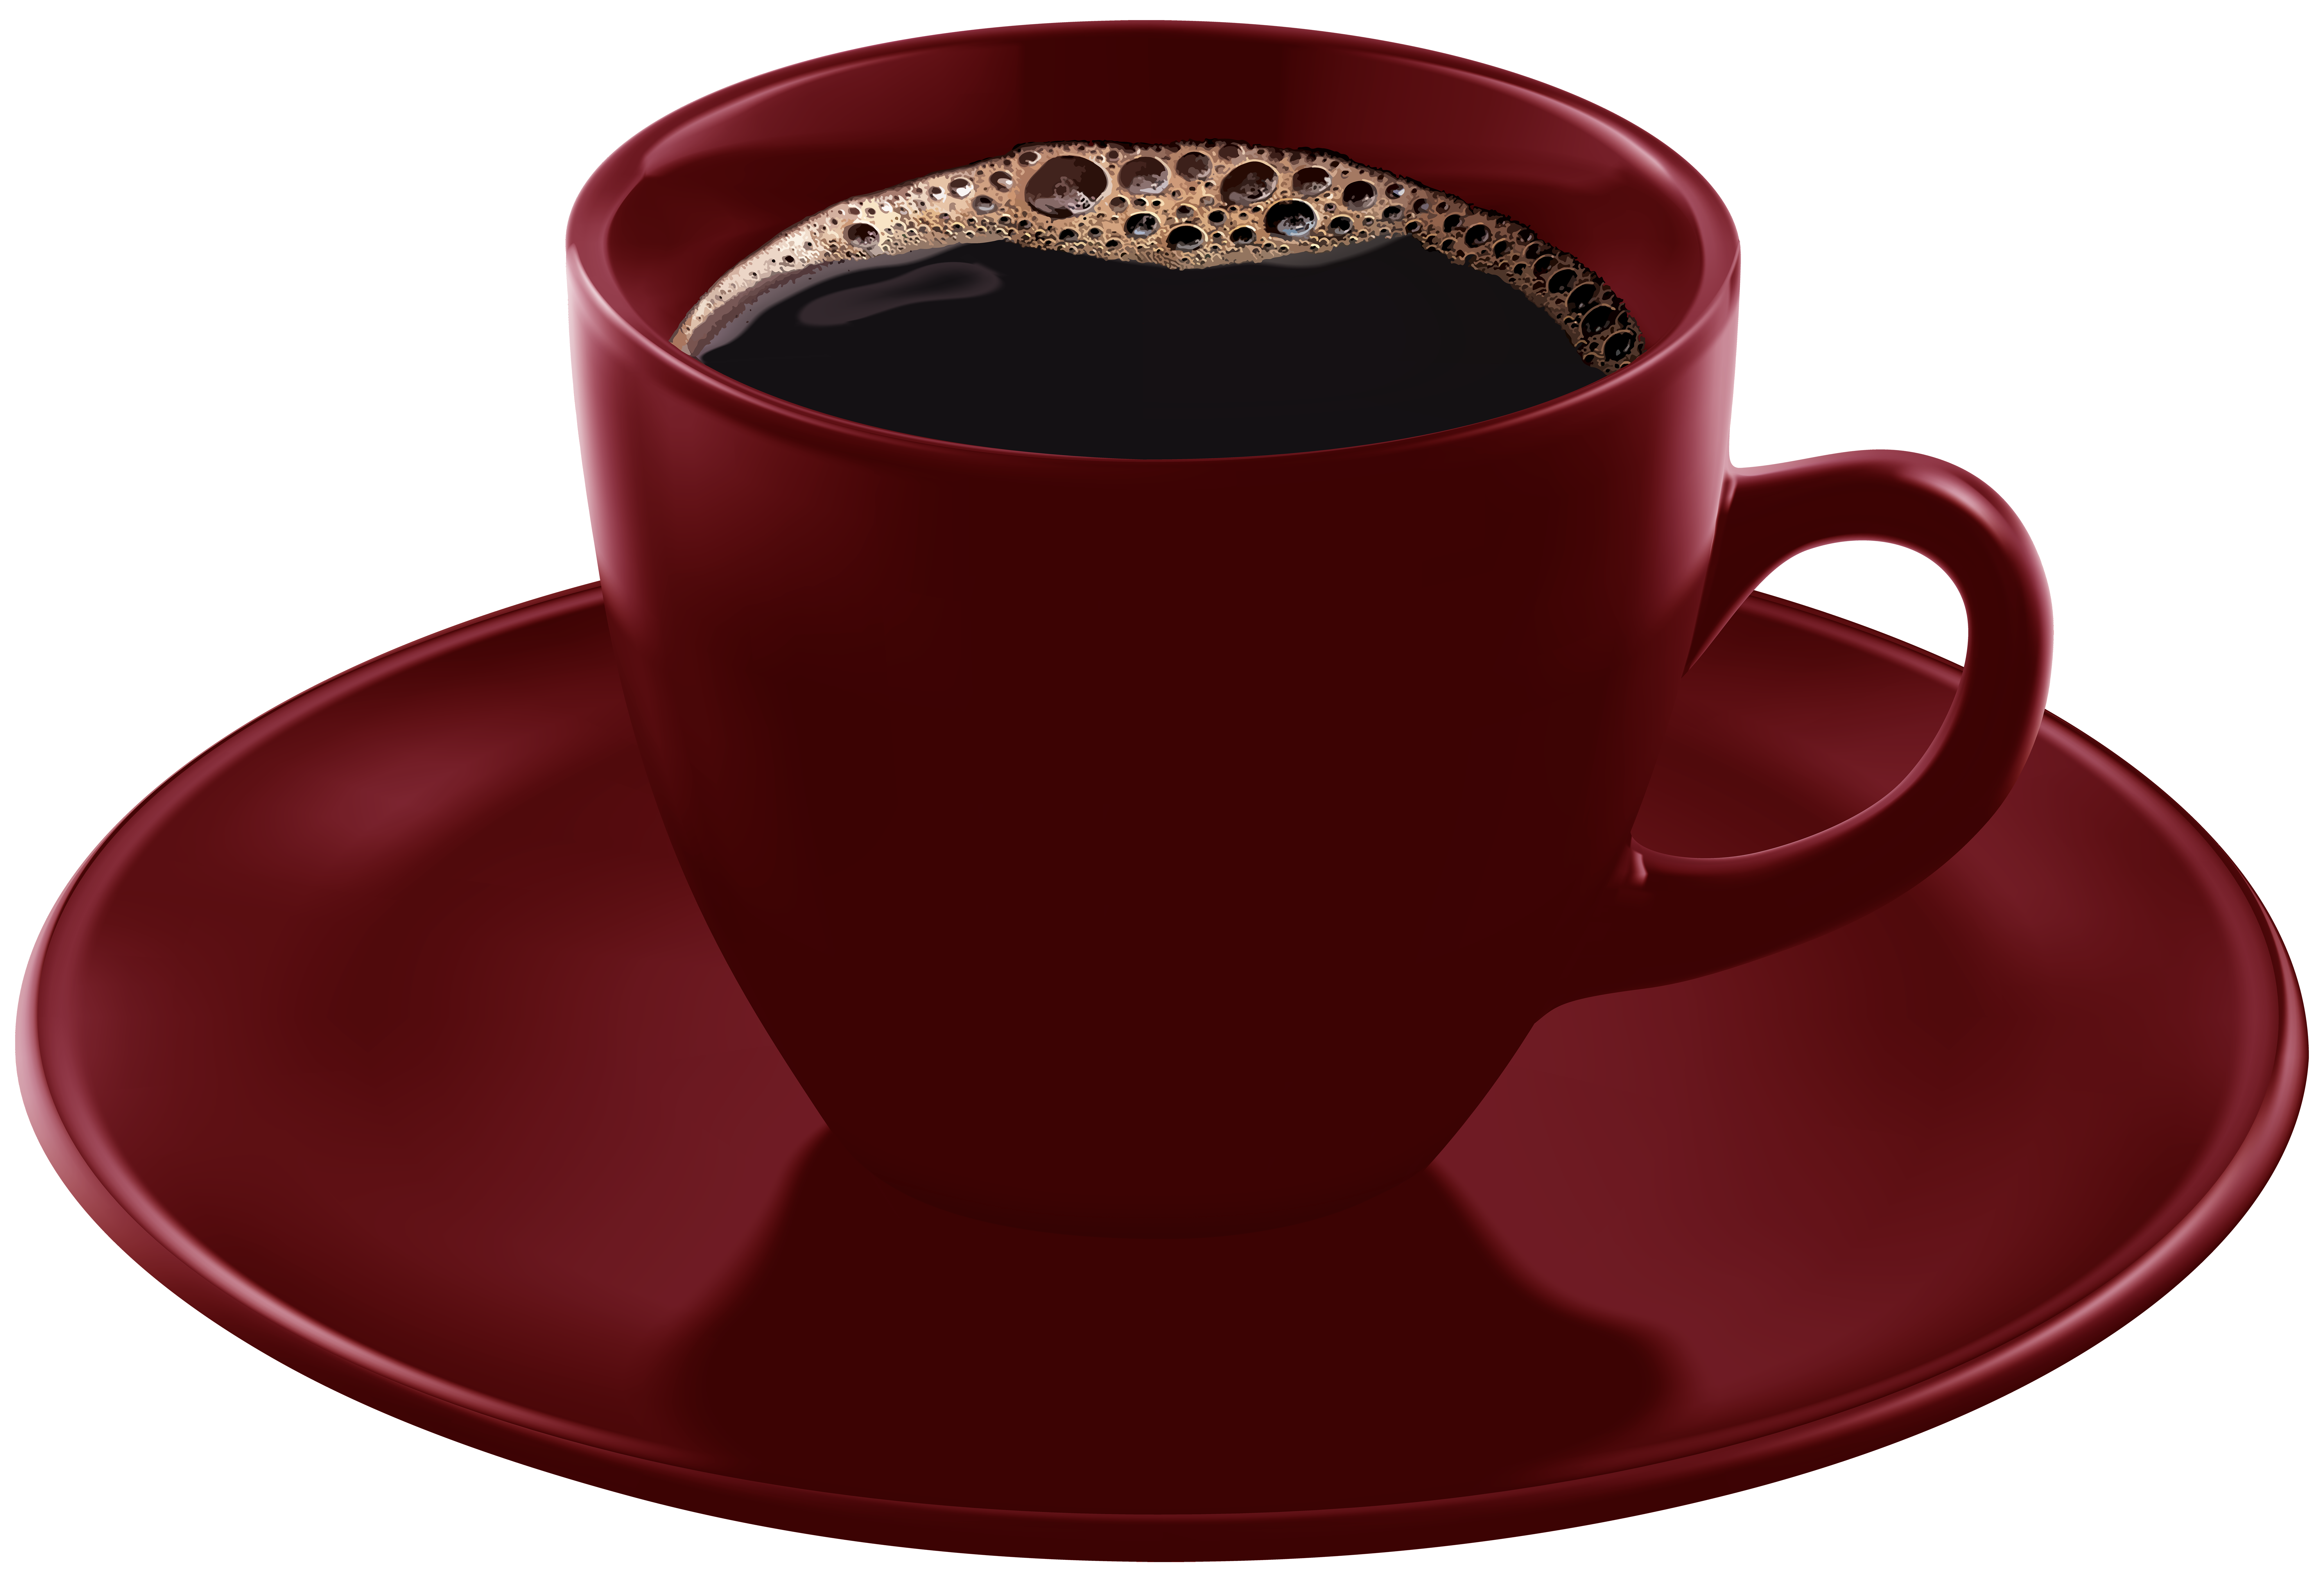 Coffee cup png clipart. Clip art gallery yopriceville